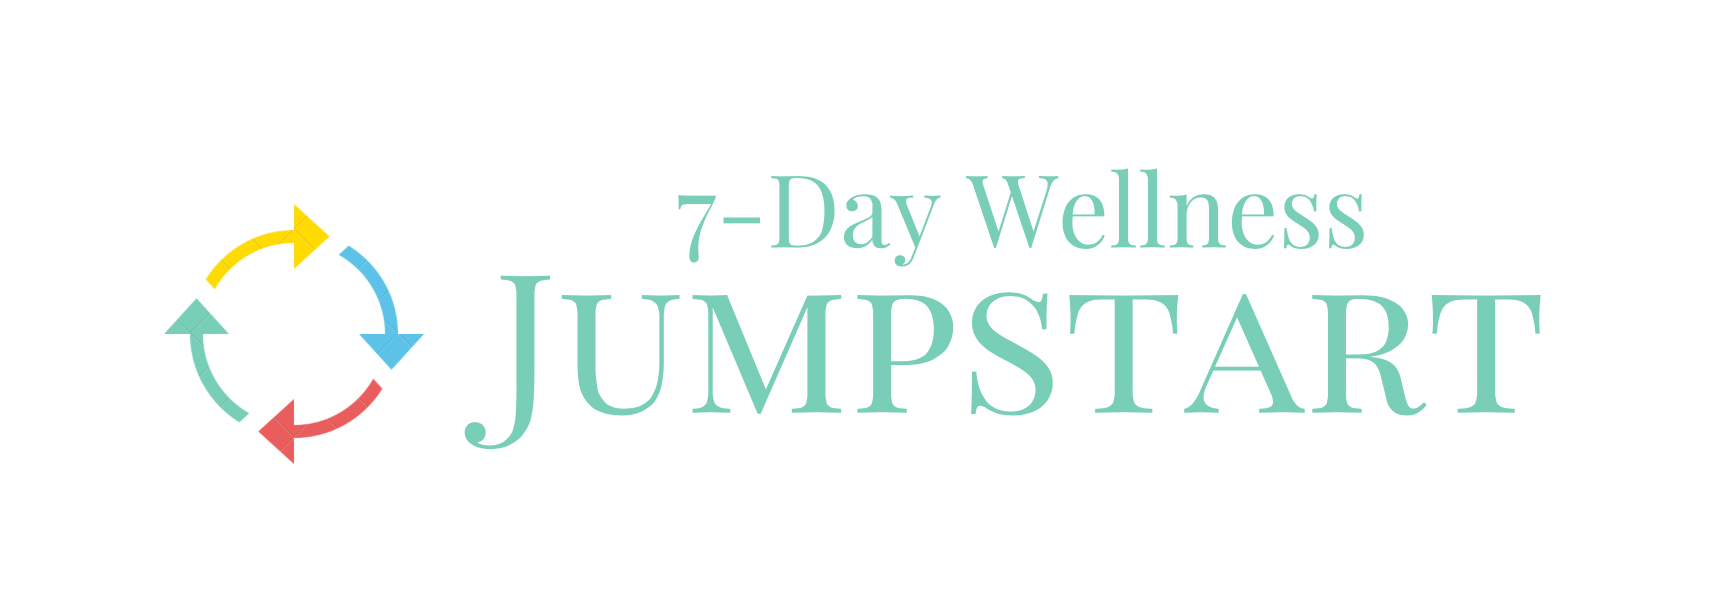 7-Day Wellness Jumstart